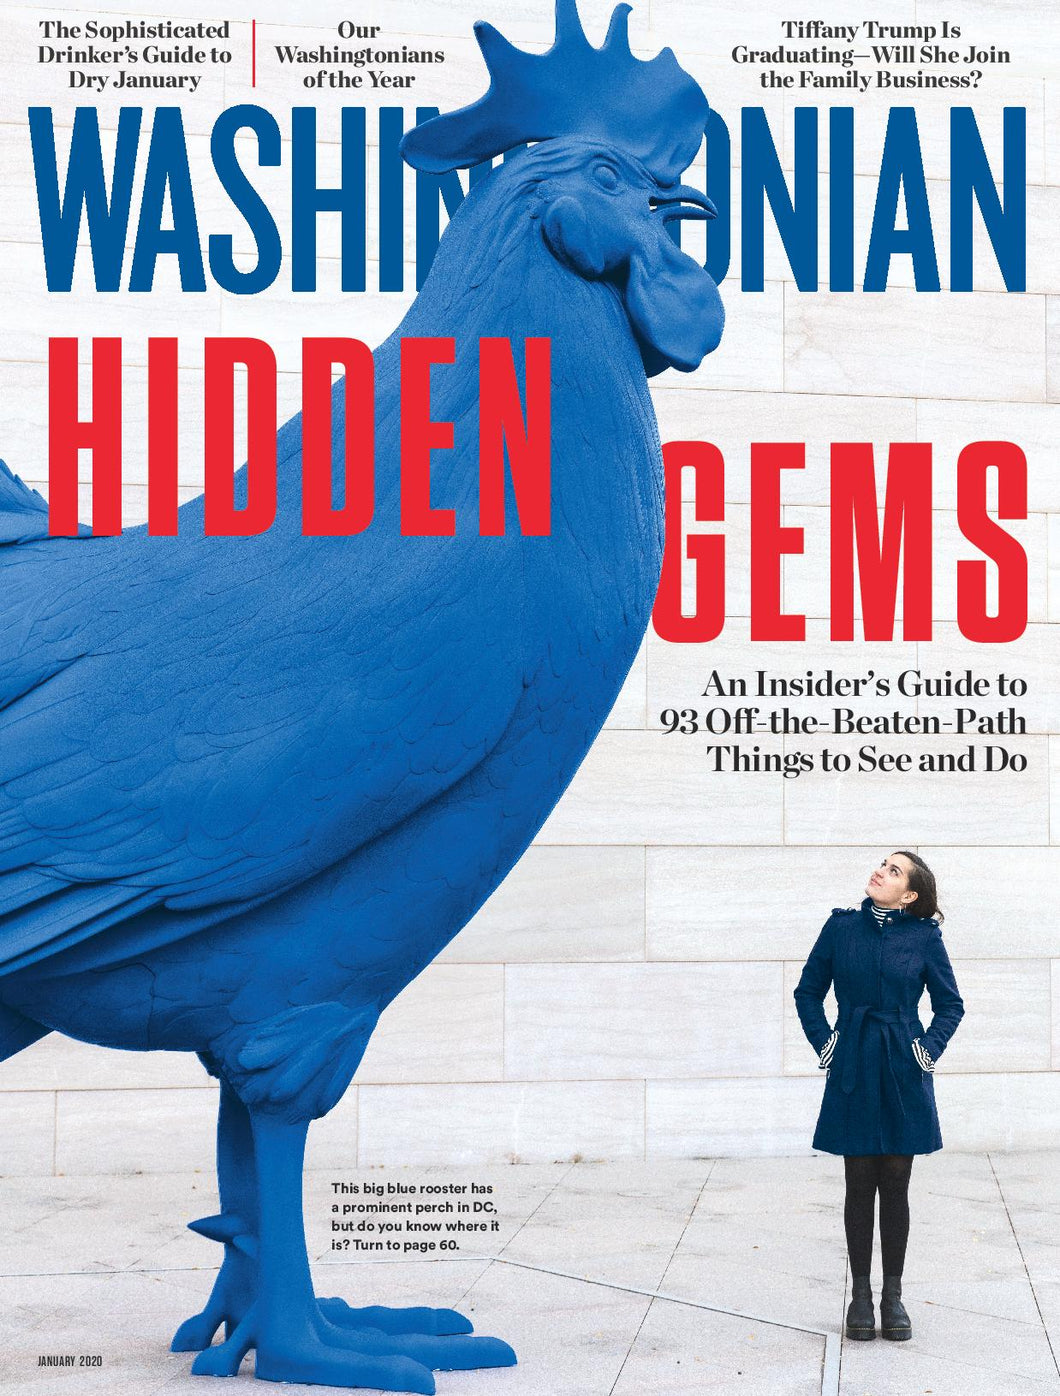 Washingtonian: January 2020 - Hidden Gems